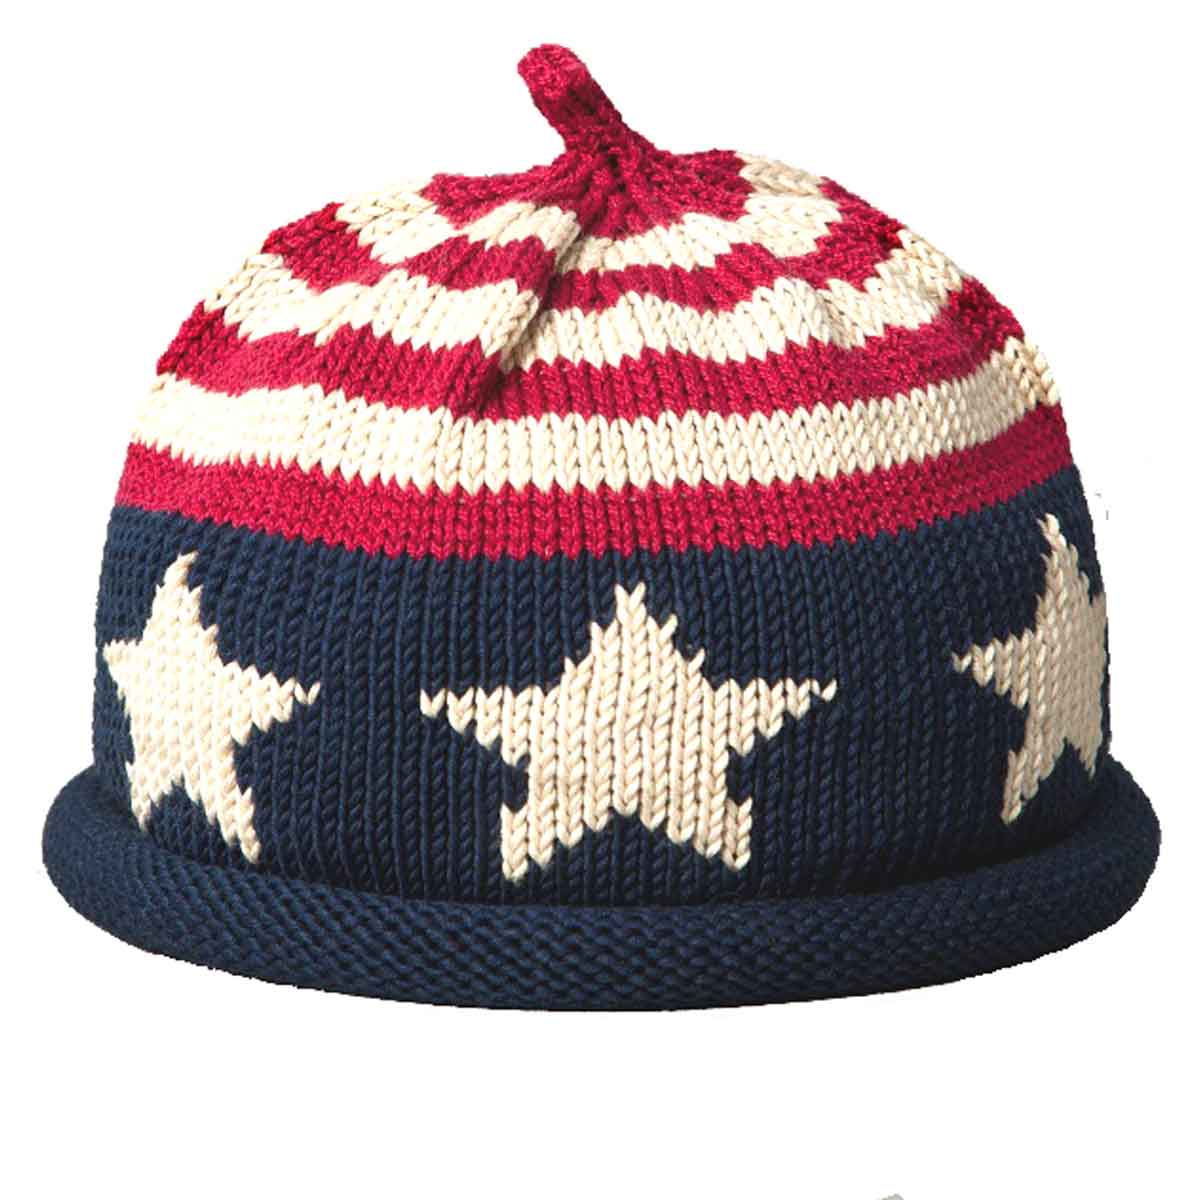 68a19cccd09e2 ... best knit hat with rolled brim with usa flag motif. the crown is red and